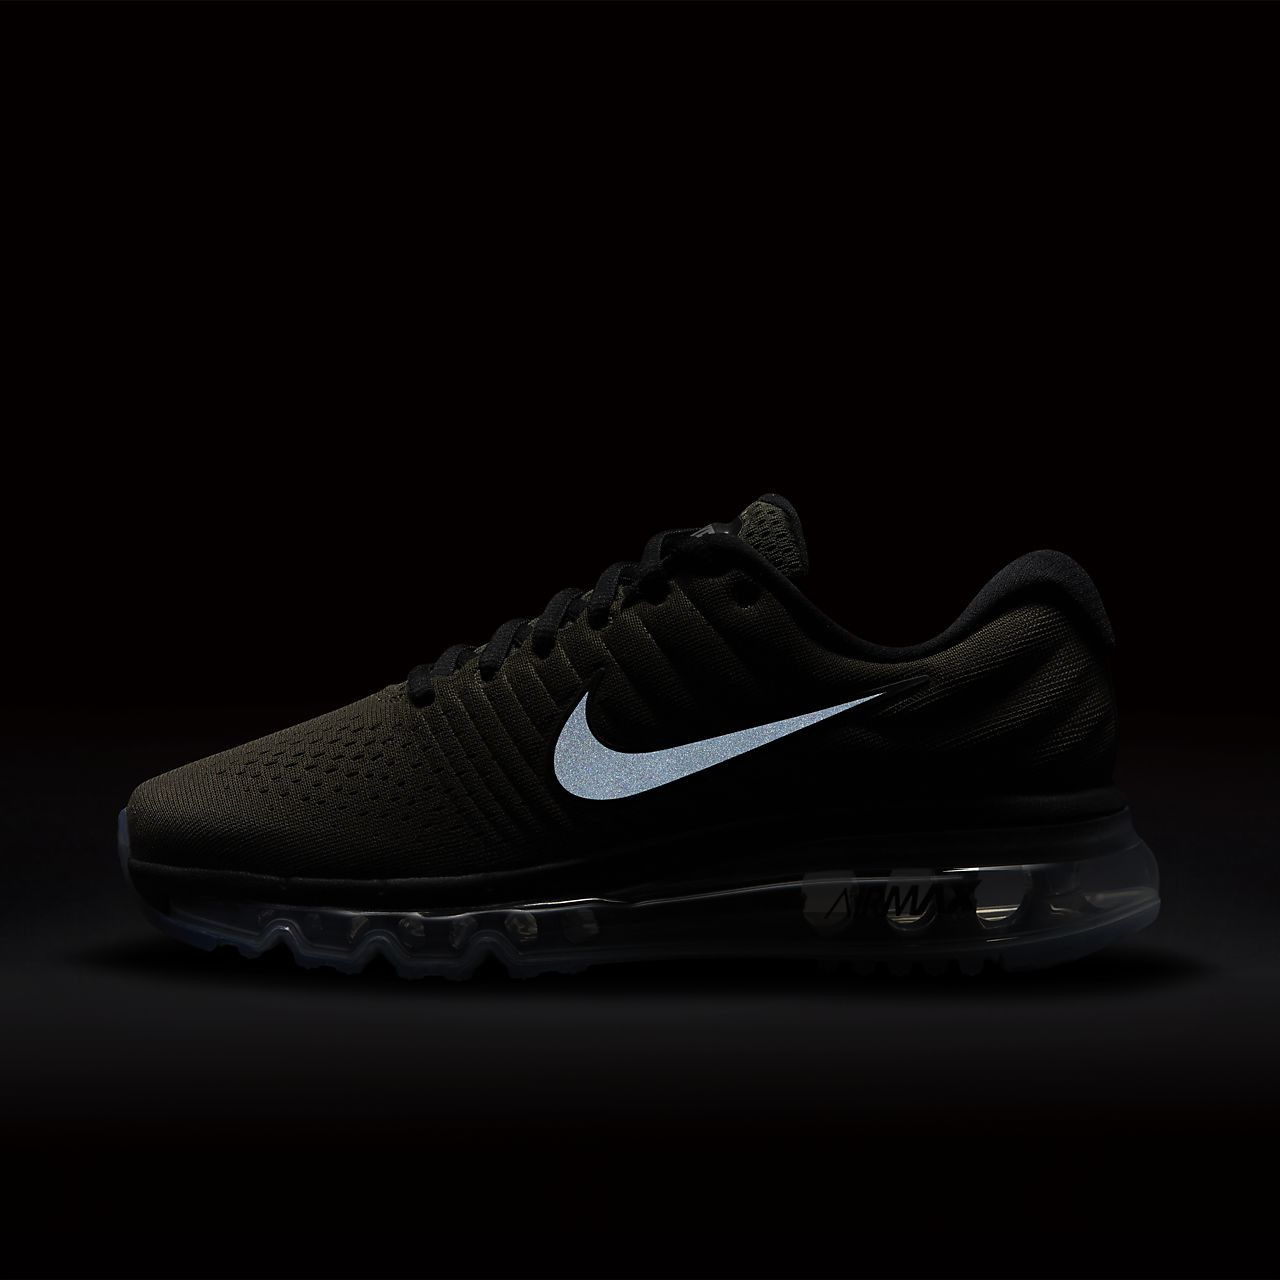 nike air max 2017 id women's nz